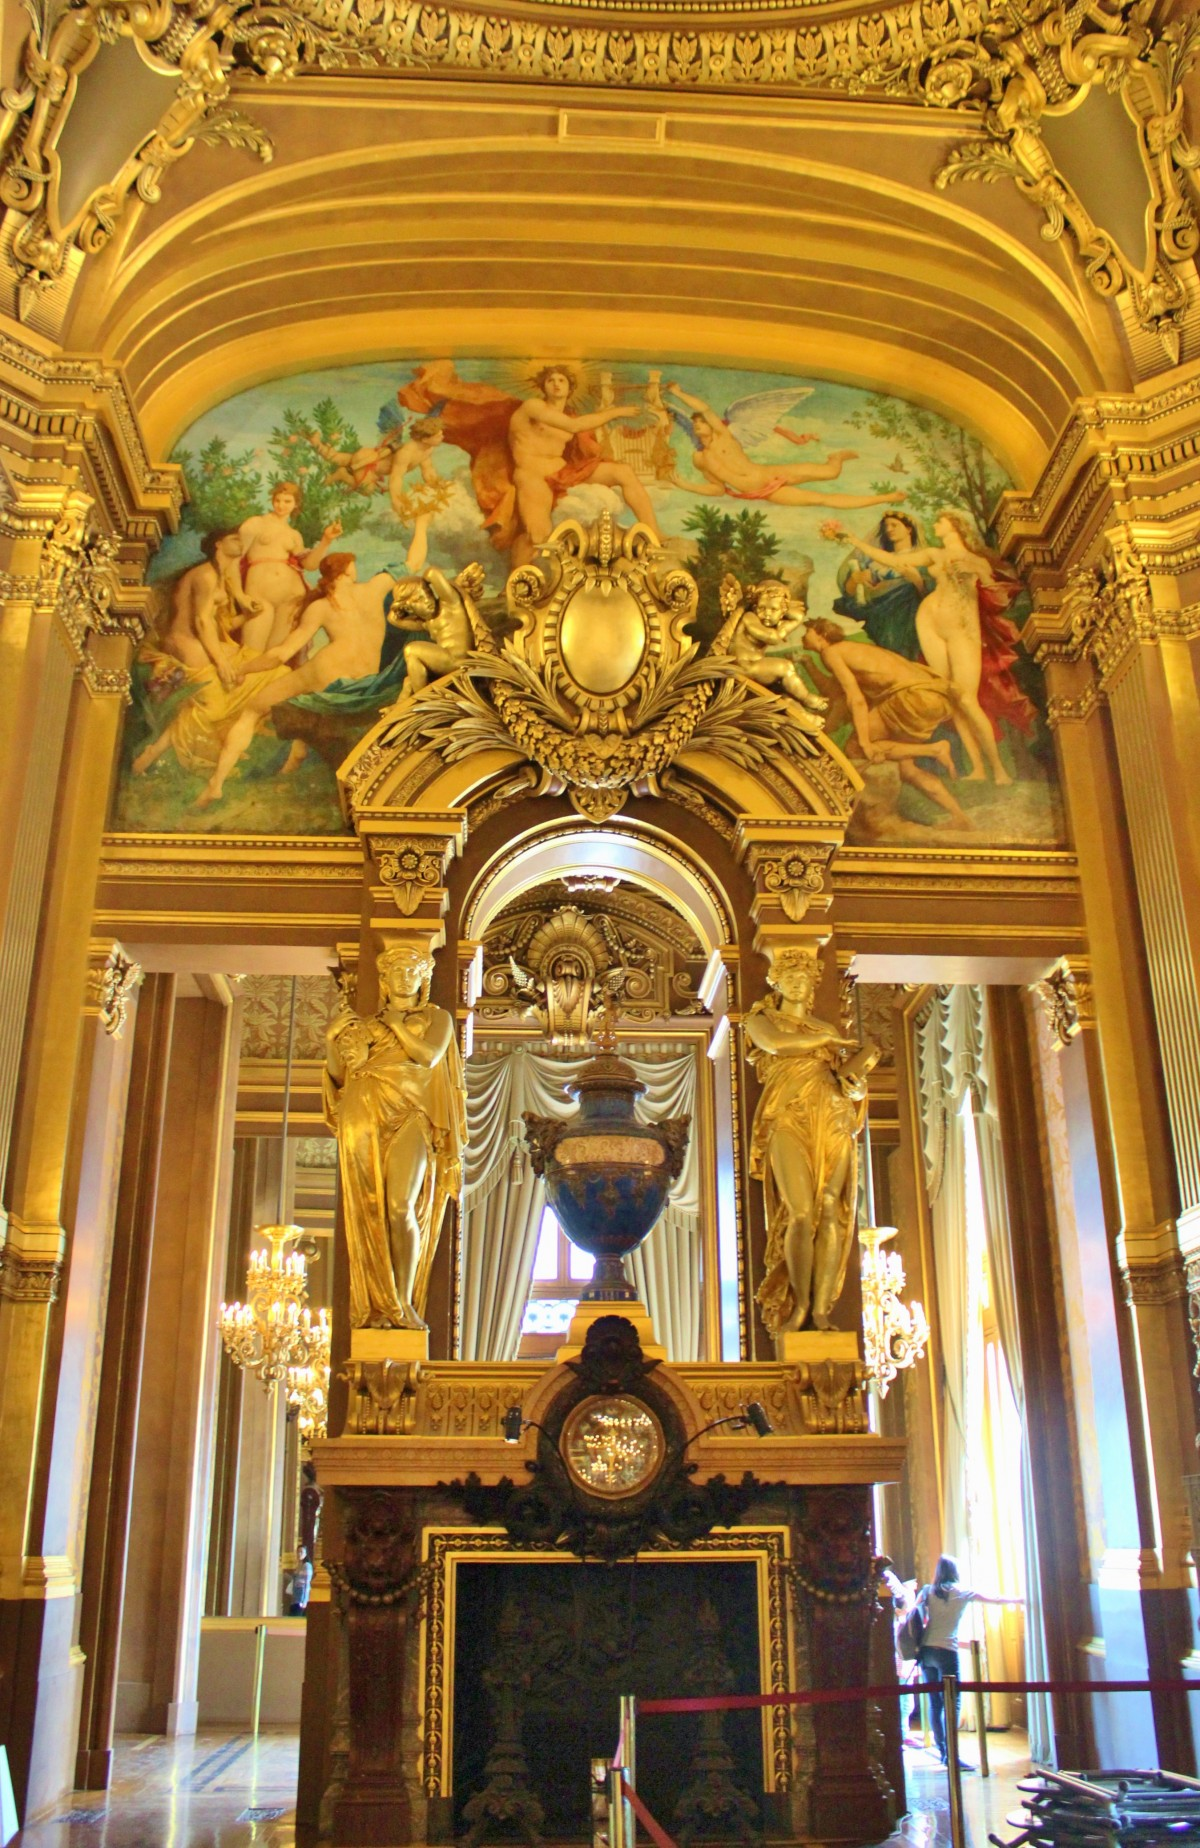 Free Images  architecture interior building palace city paris france opera landmark